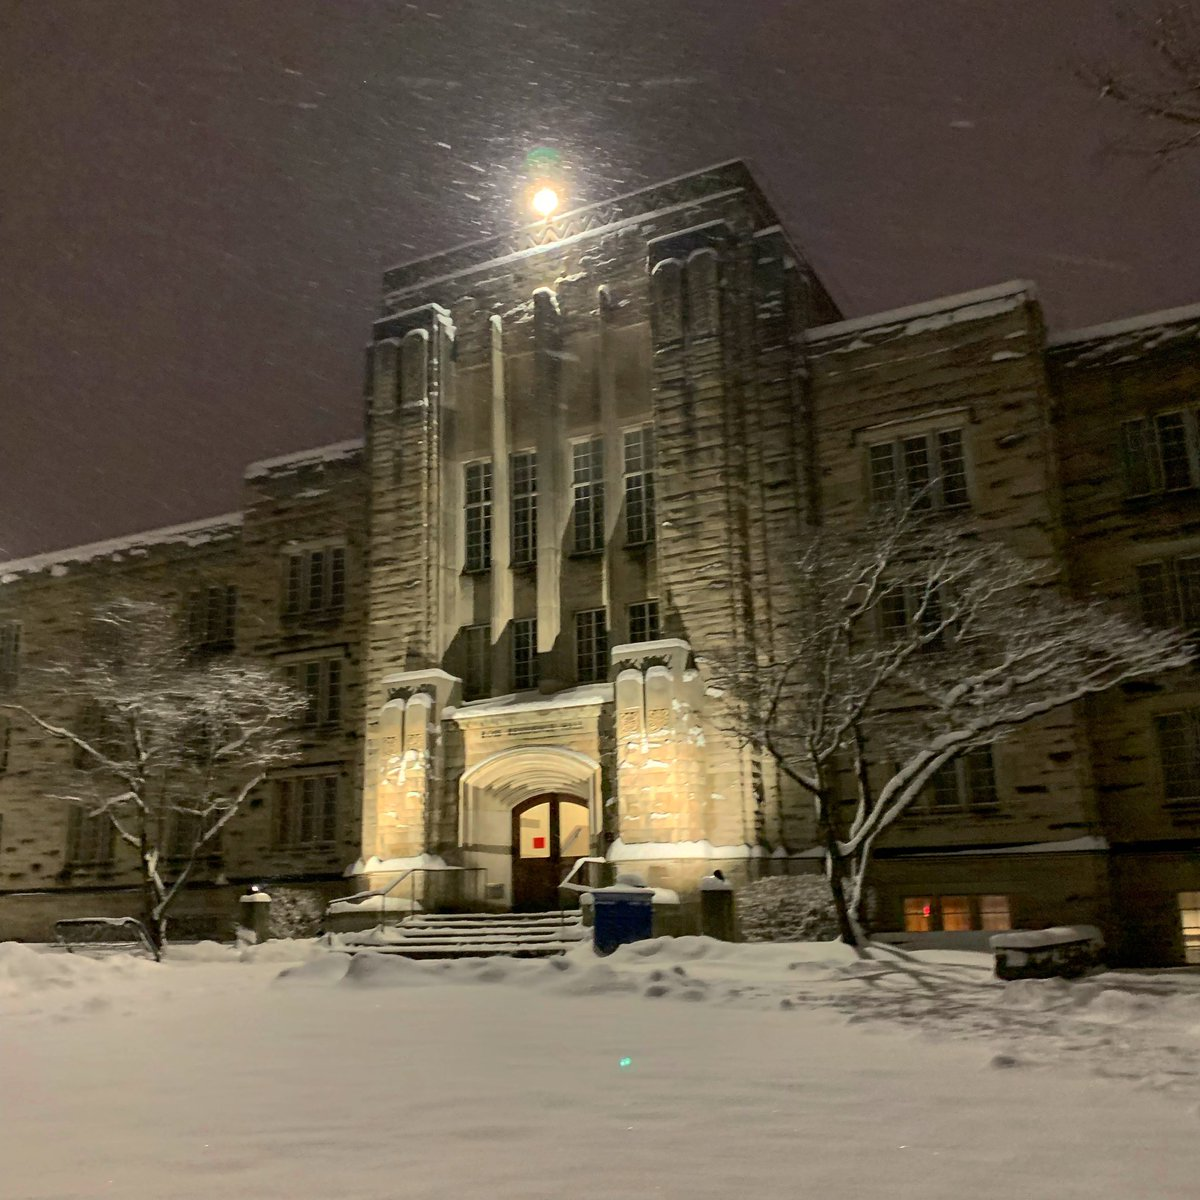 RT @butleru: ❄️❄️❄️ https://t.co/Az6eKg345K